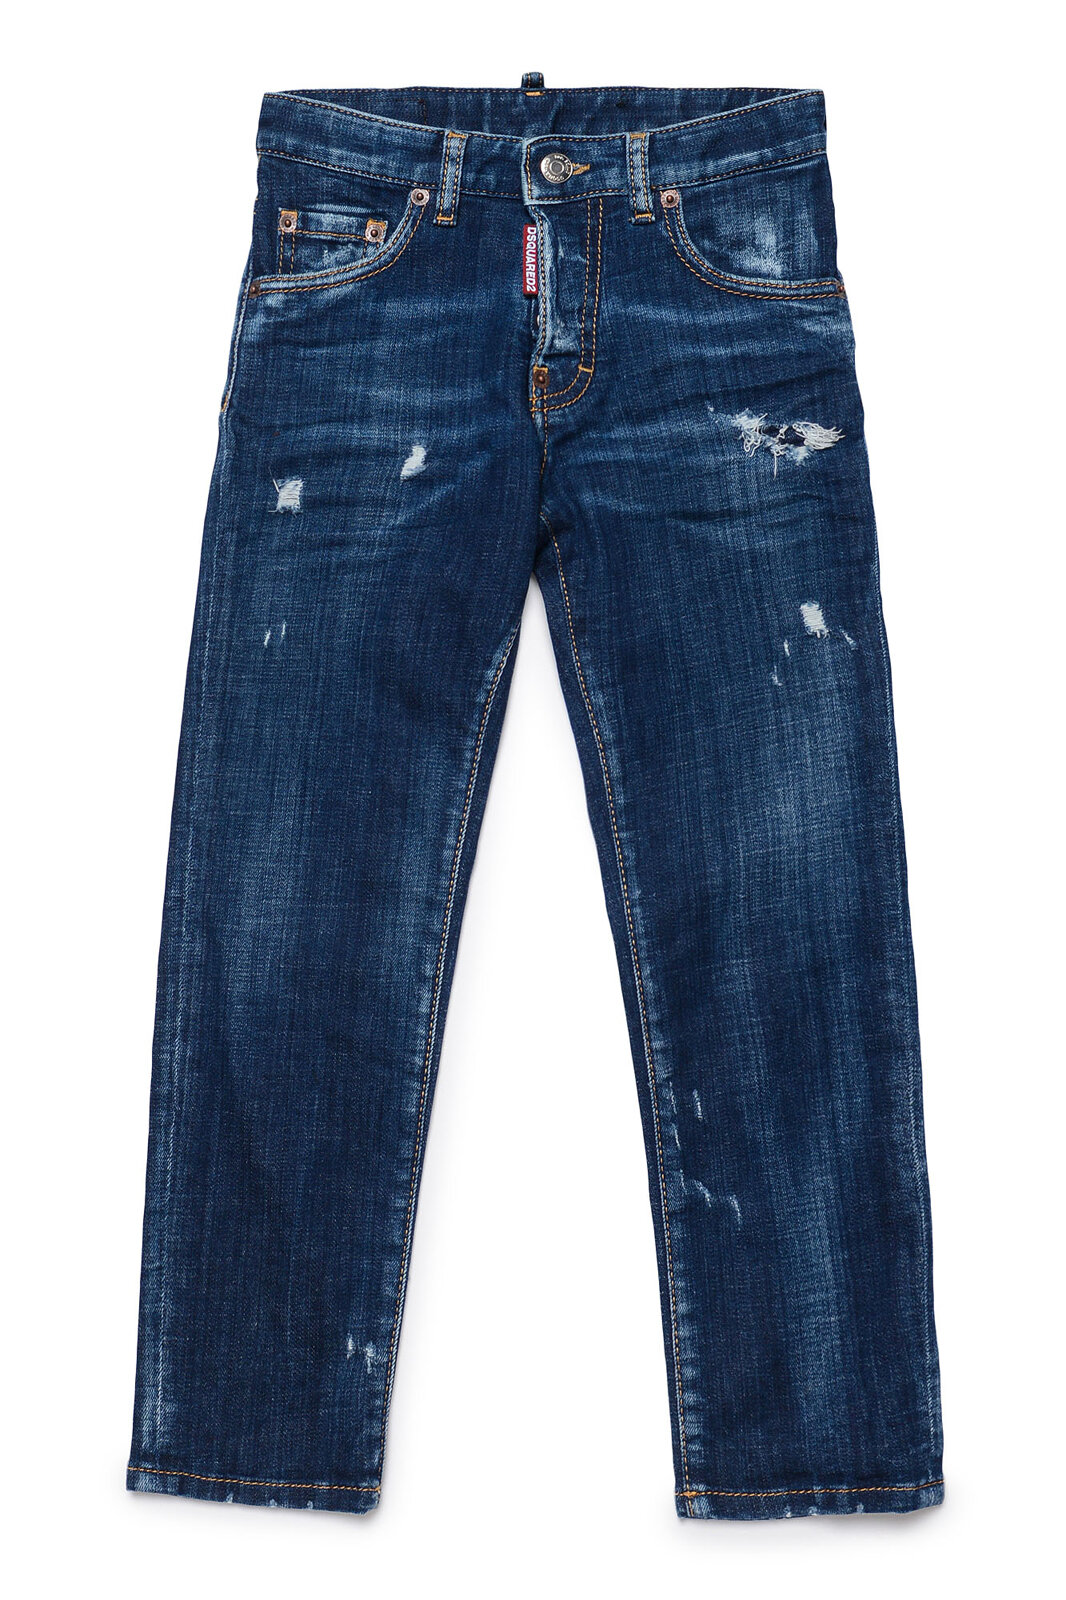 Run Dan Jean Pants - Dsquared2 Junior